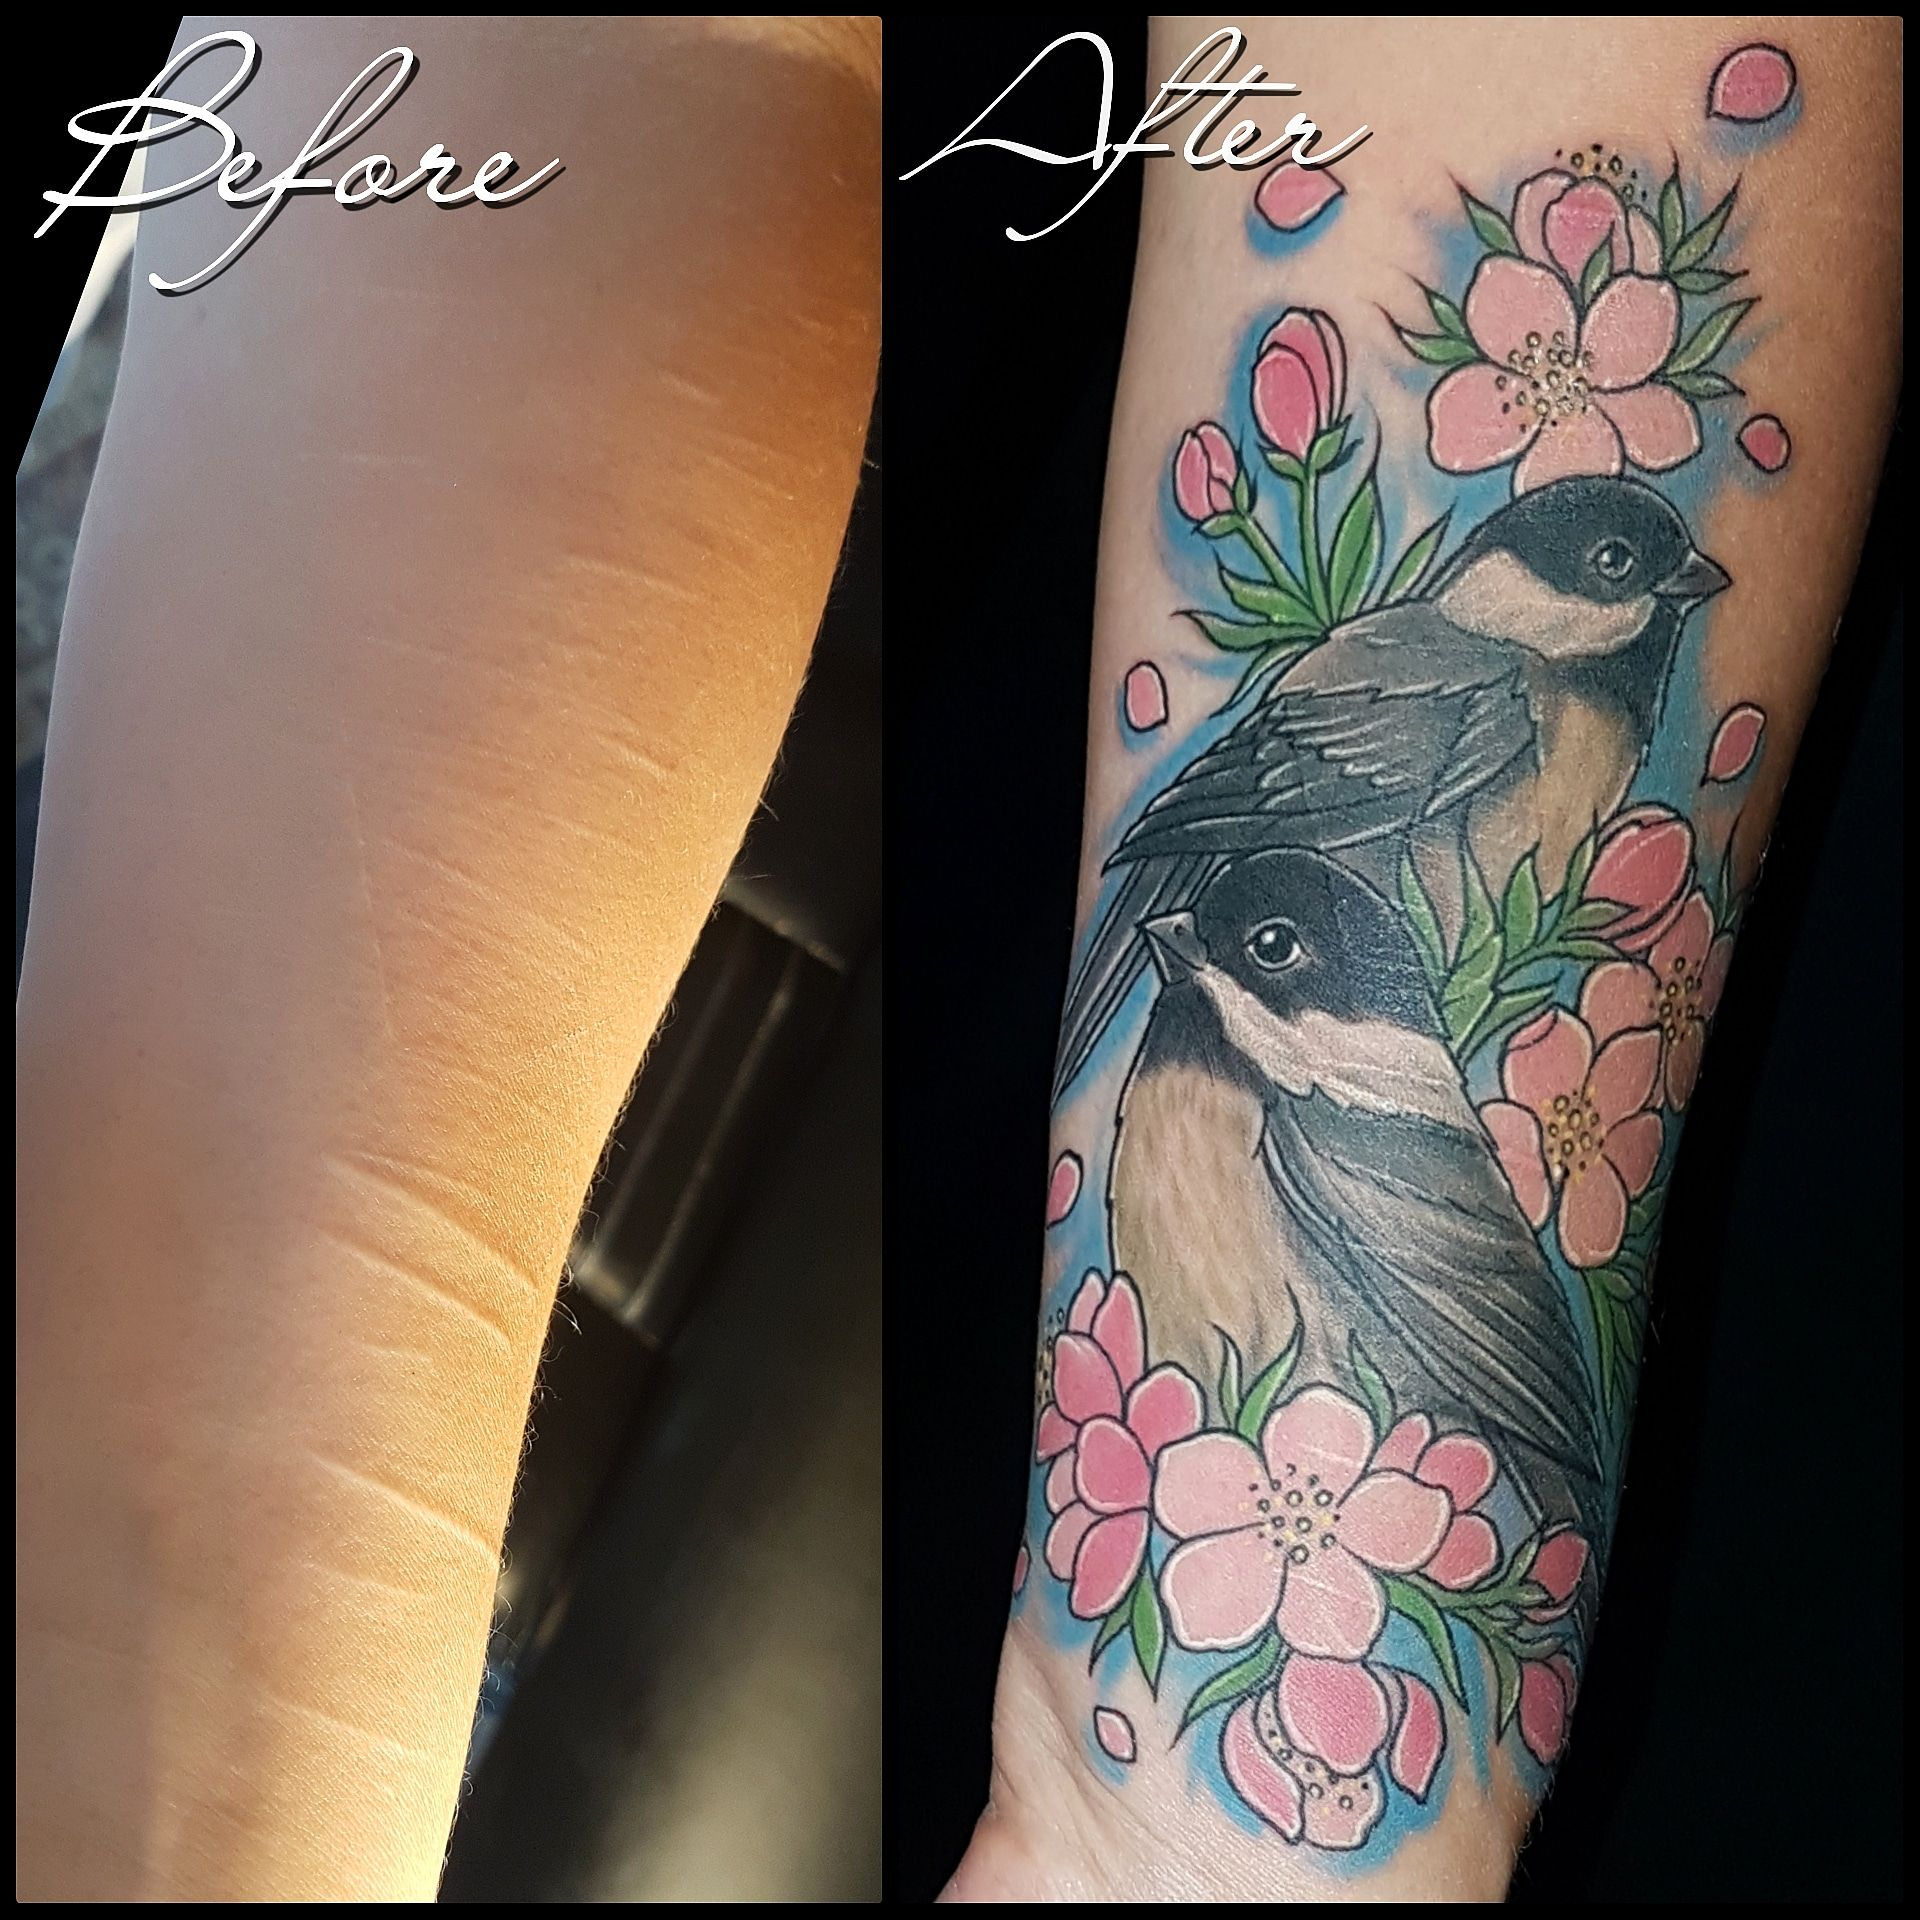 Pin On Self Harm Cover Up Tattoos